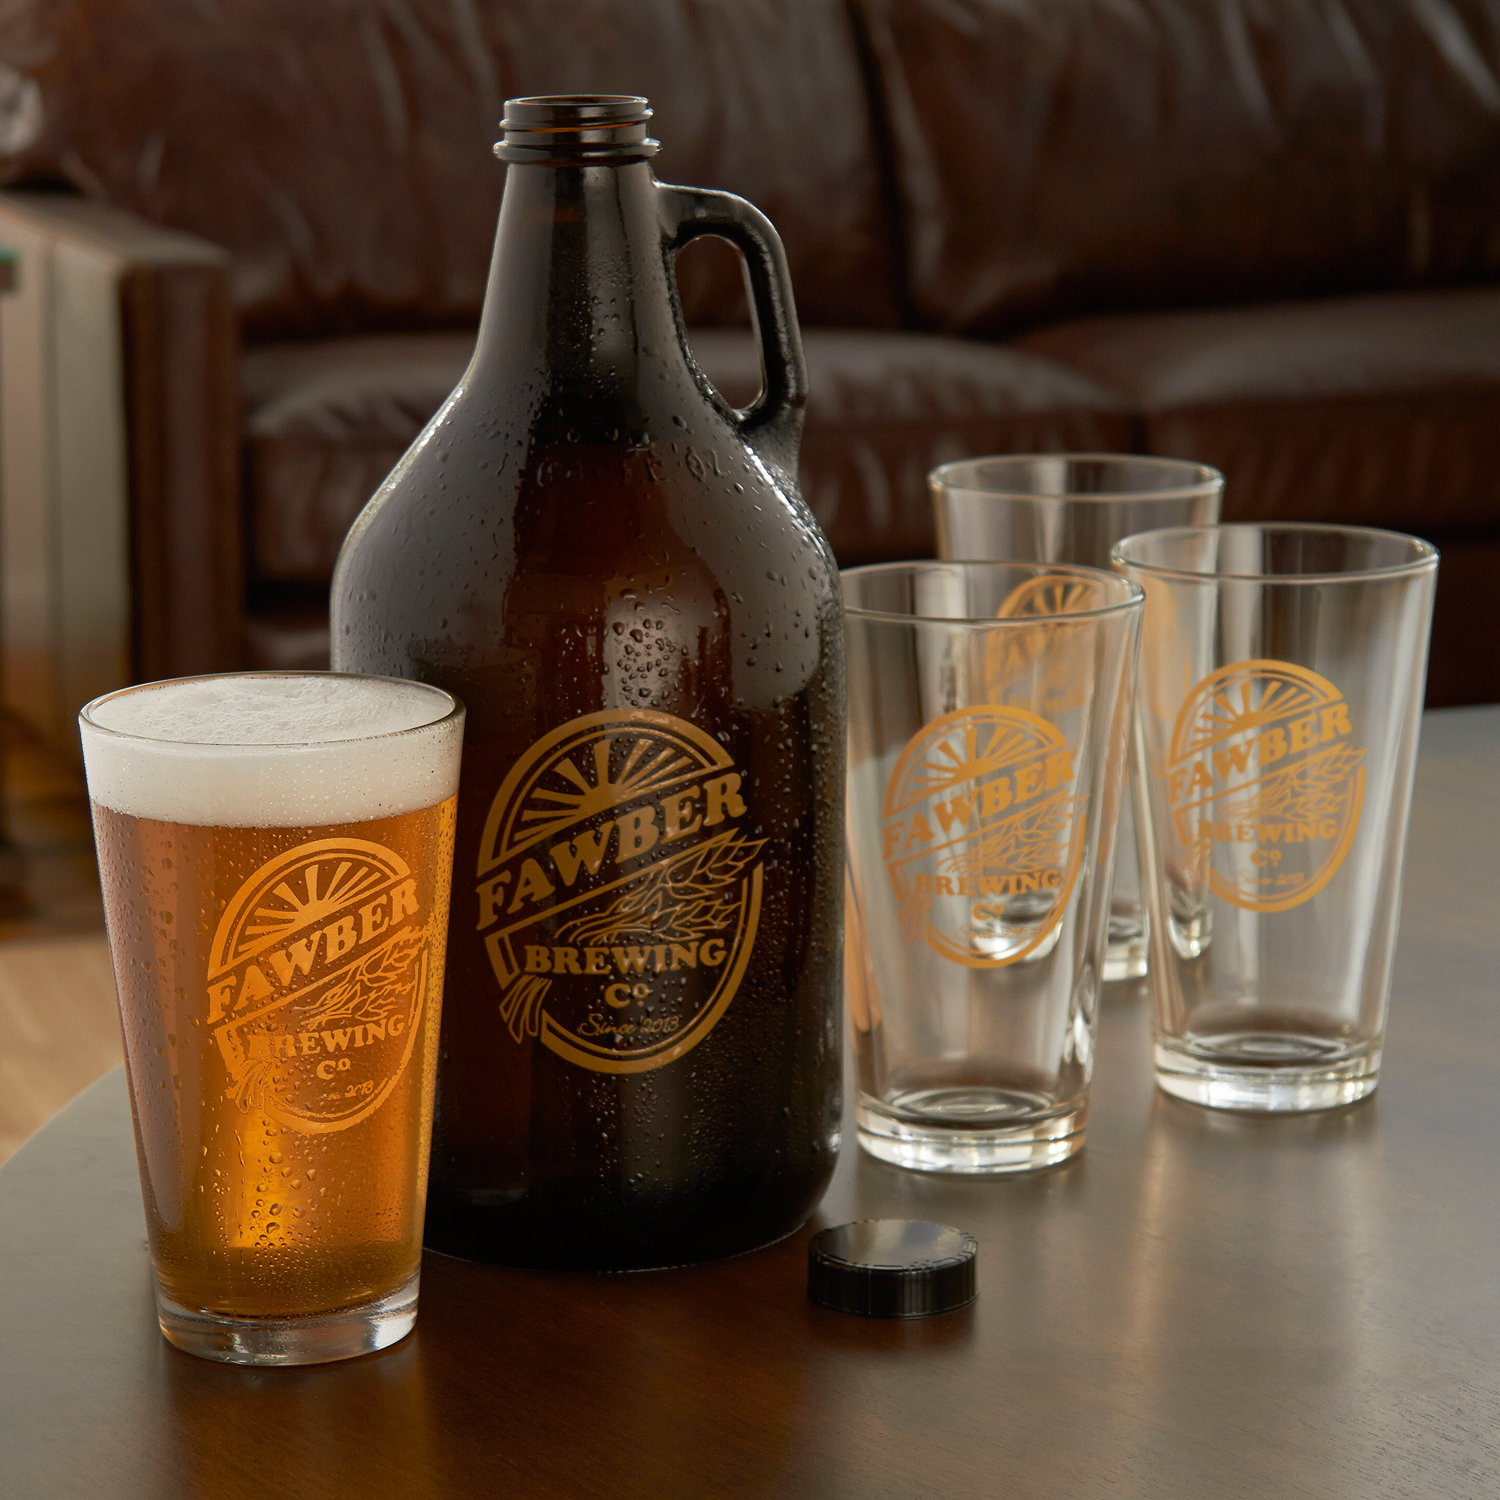 Bodacious Growler Sets Preparing Zoom Personalized Brewing Growler Glasses Set Wine Enthusiast Personalized Beer Glasses Engraved Personalized Beer Glasses inspiration Personalized Beer Glasses